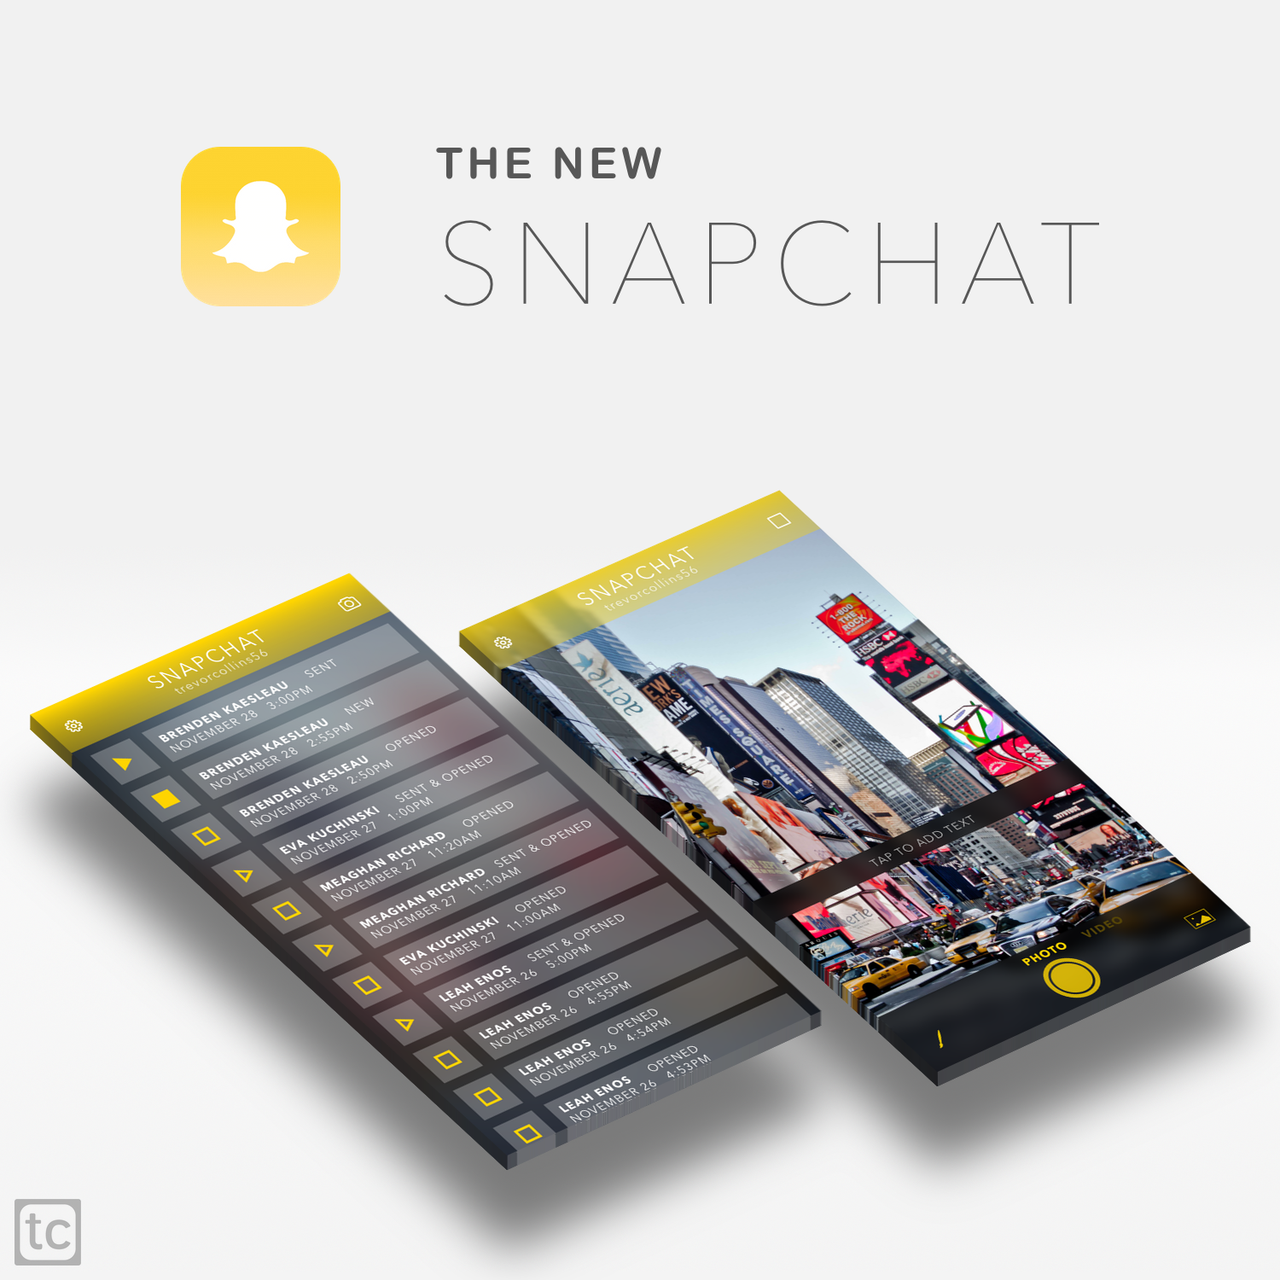 snapchat_redesign_by_trevorcollins56-d70dm7q